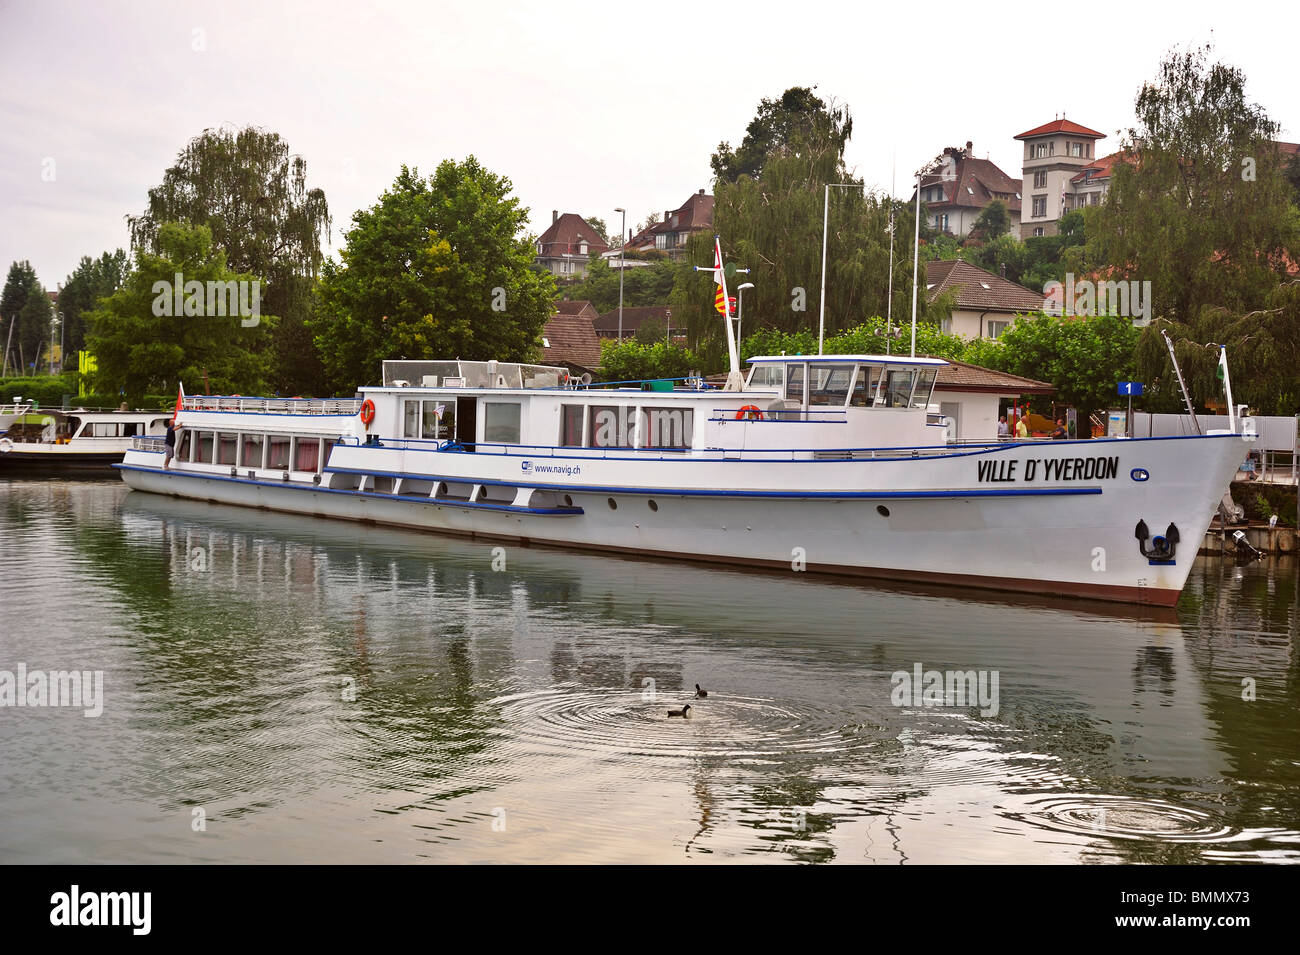 The Ville d'Yverdon, a Swiss tour boat that plies the lakes of Morat, Murten and Neuchatel , moored in the harbour - Stock Image